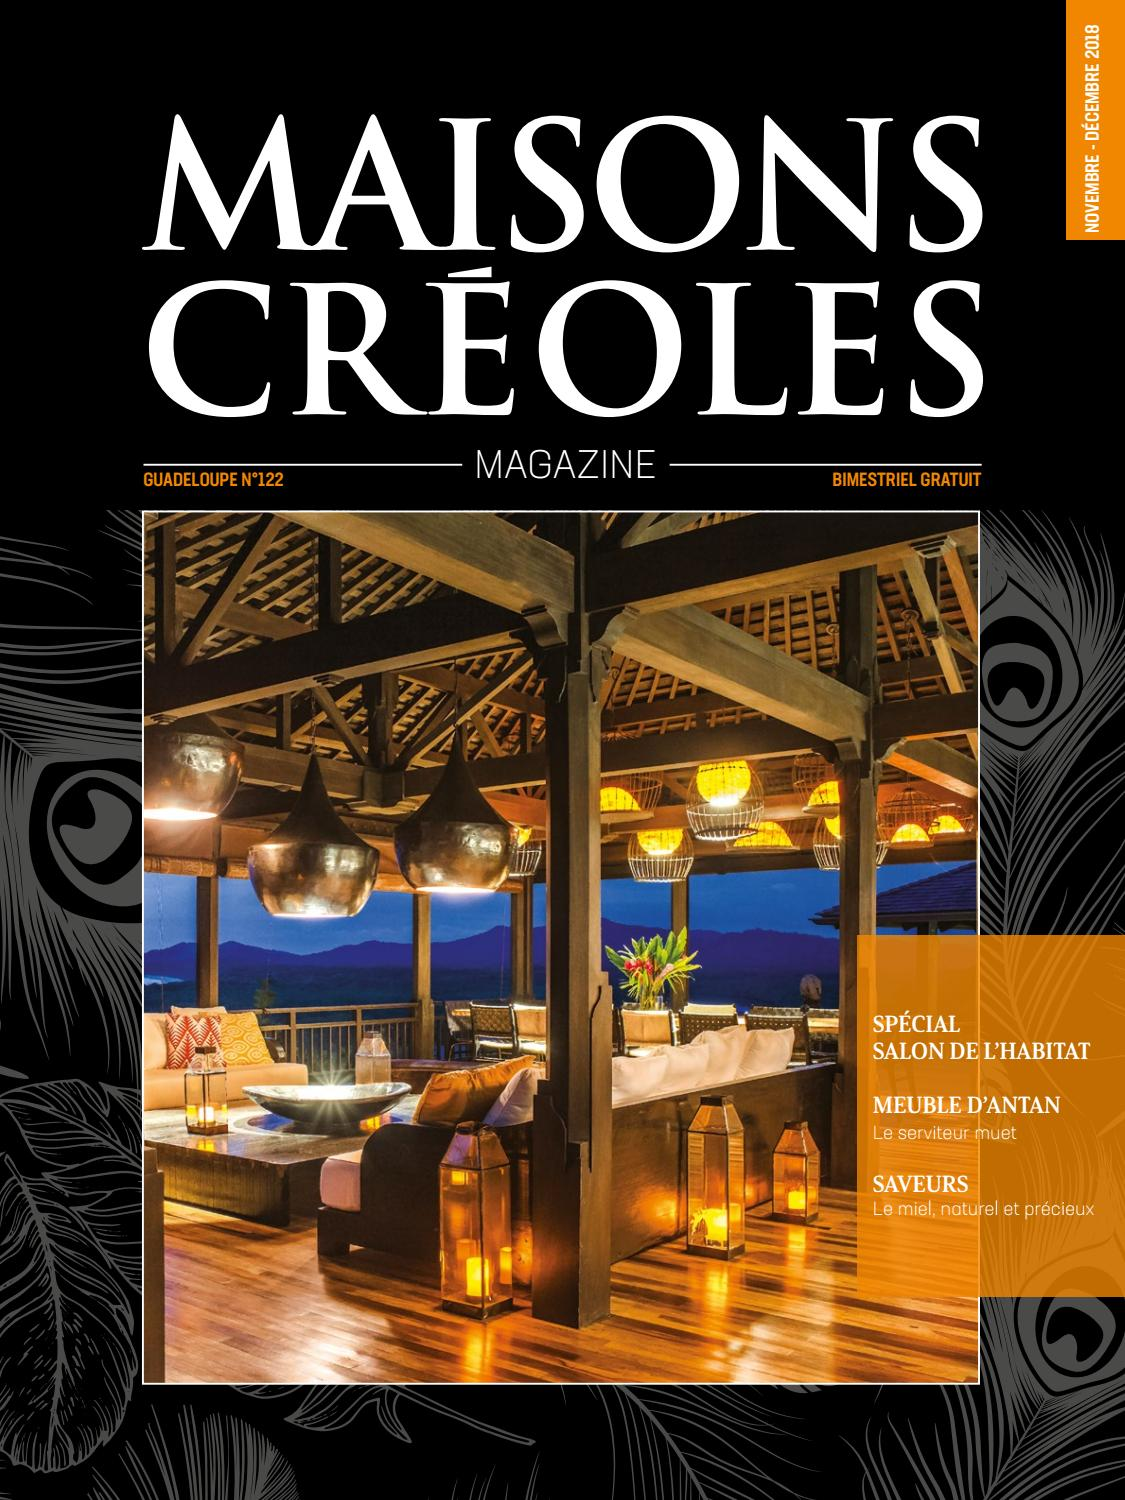 Créoles Creoles N°122 Issuu Magazine Guadeloupe By Maisons qzVpMSU